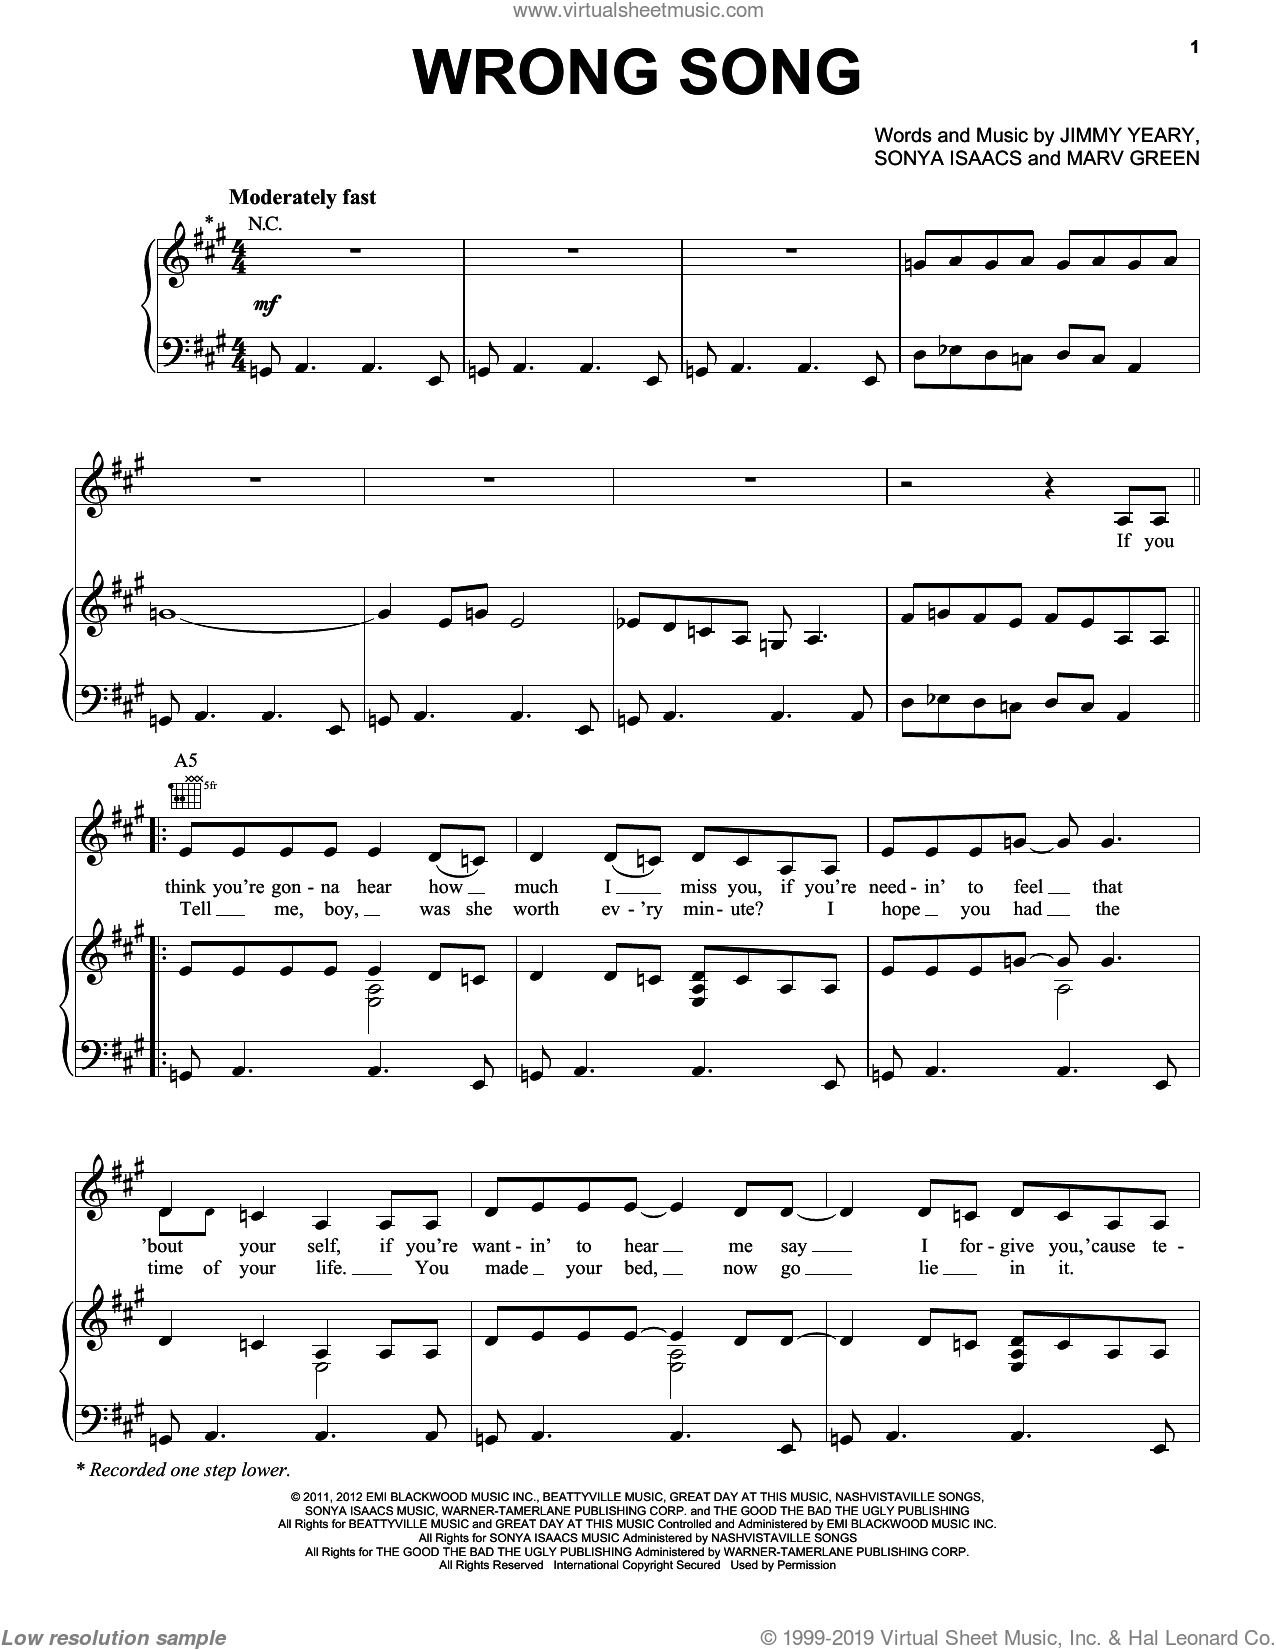 Wrong Song sheet music for voice, piano or guitar by Sonya Isaacs